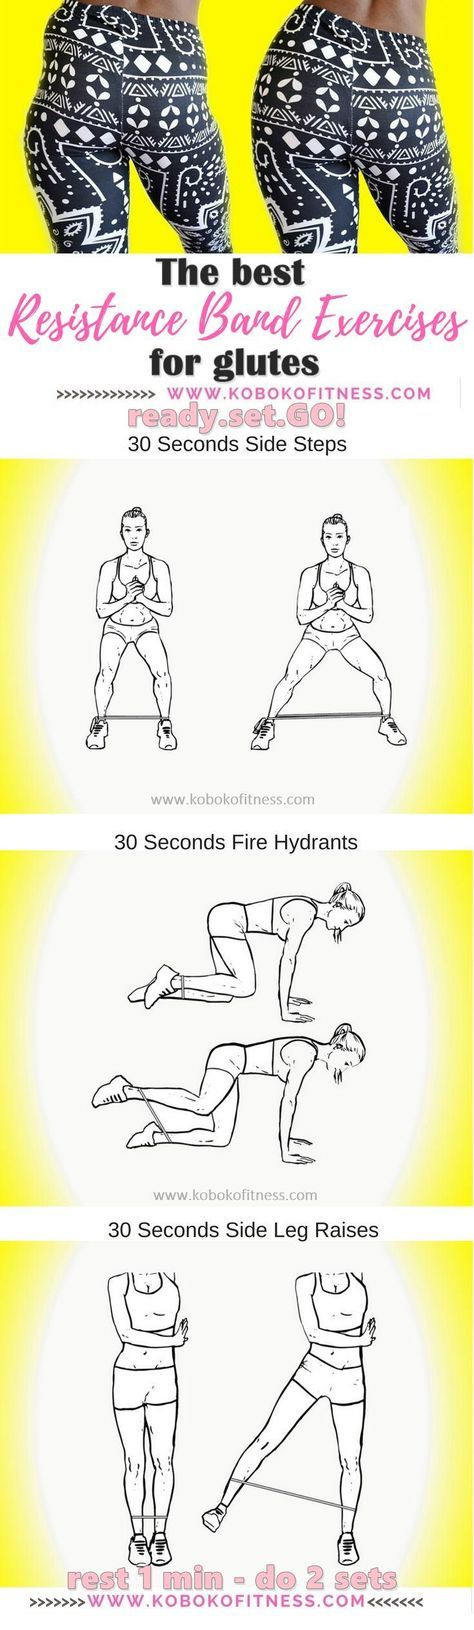 You have discovered the best resistance band exercises for glutes. Targets the hip dip area specifically to improve your butt shape and make it rounder